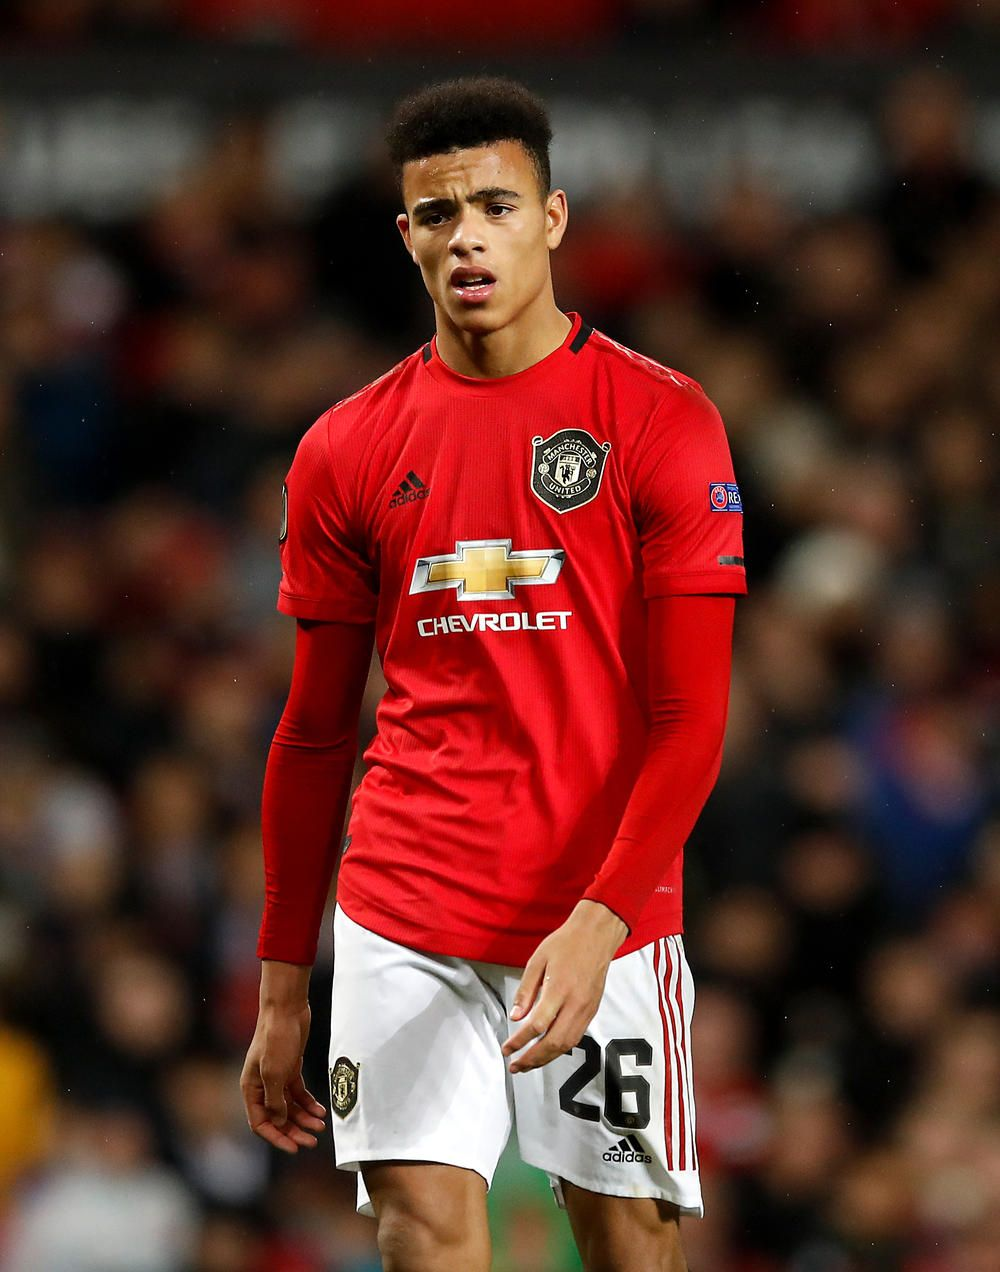 OPINION: Mason Greenwood has the highest ceiling of any